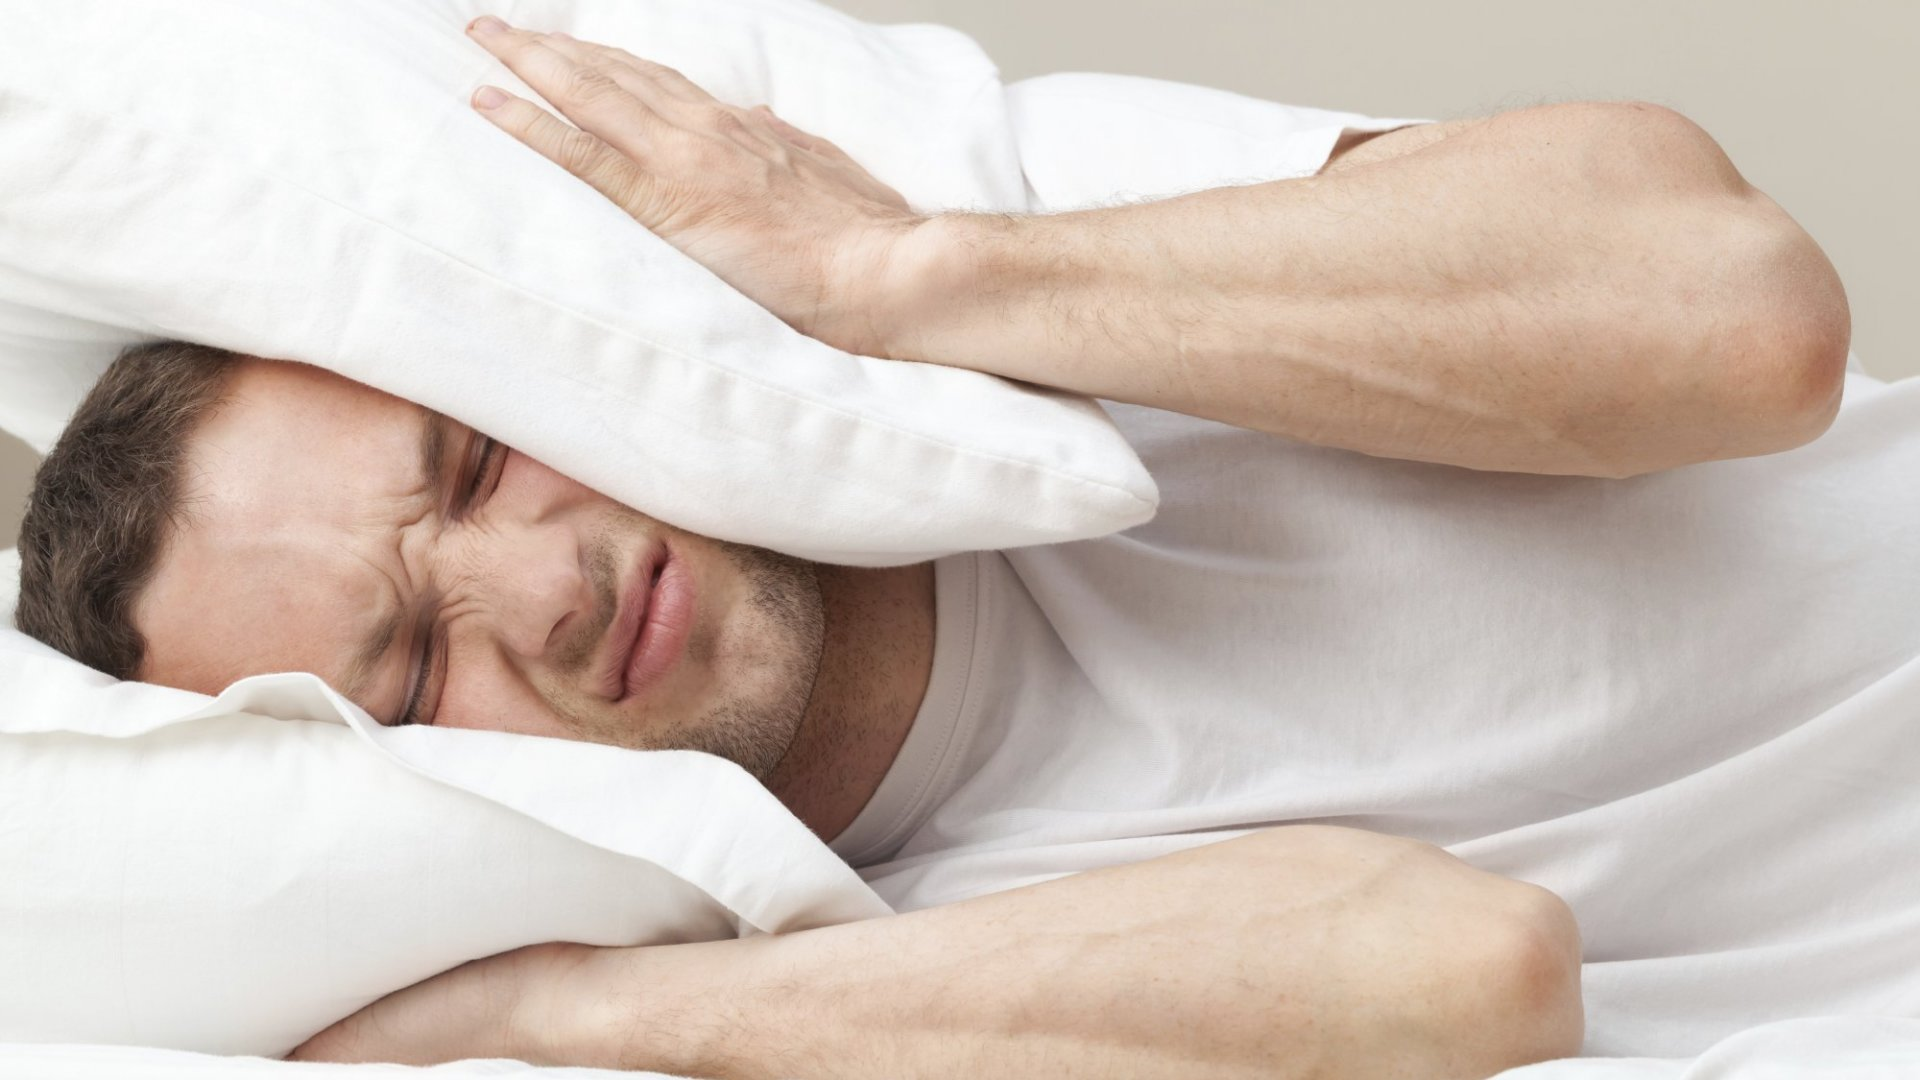 5 Easy Ways Night Owls Can Make Mornings More Tolerable